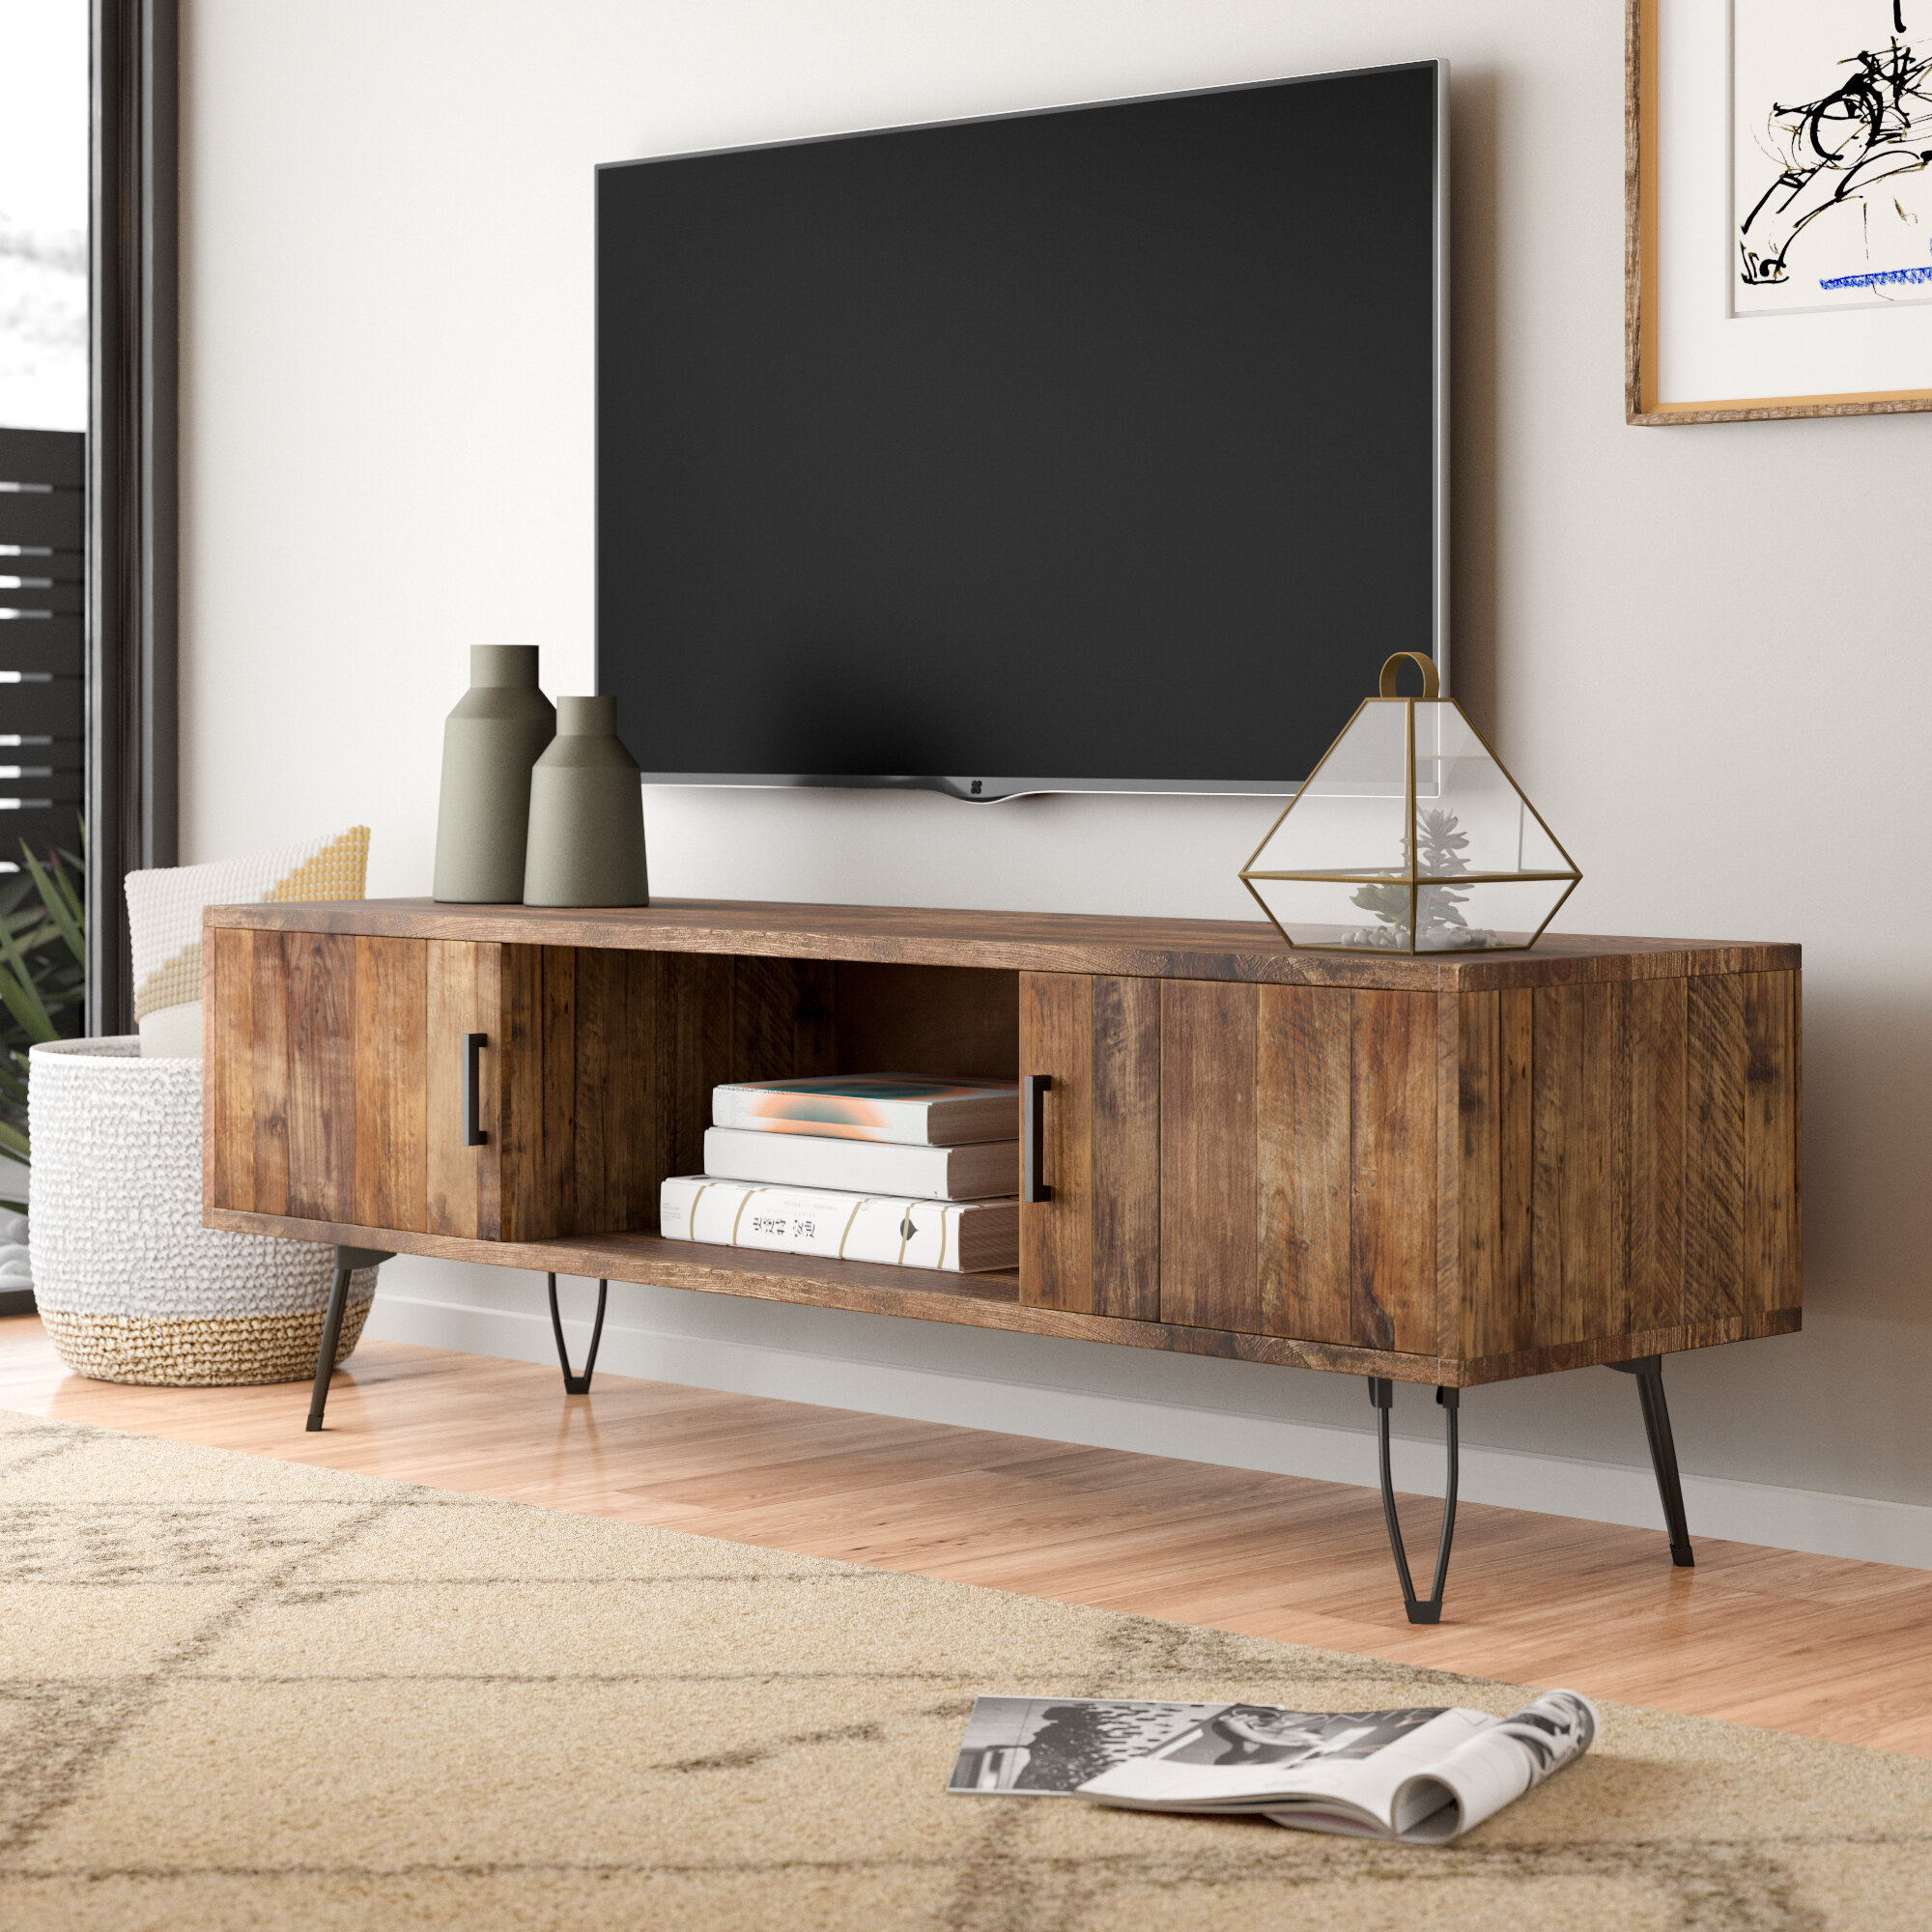 Low Tv Stands Free Shipping Over 35 Wayfair